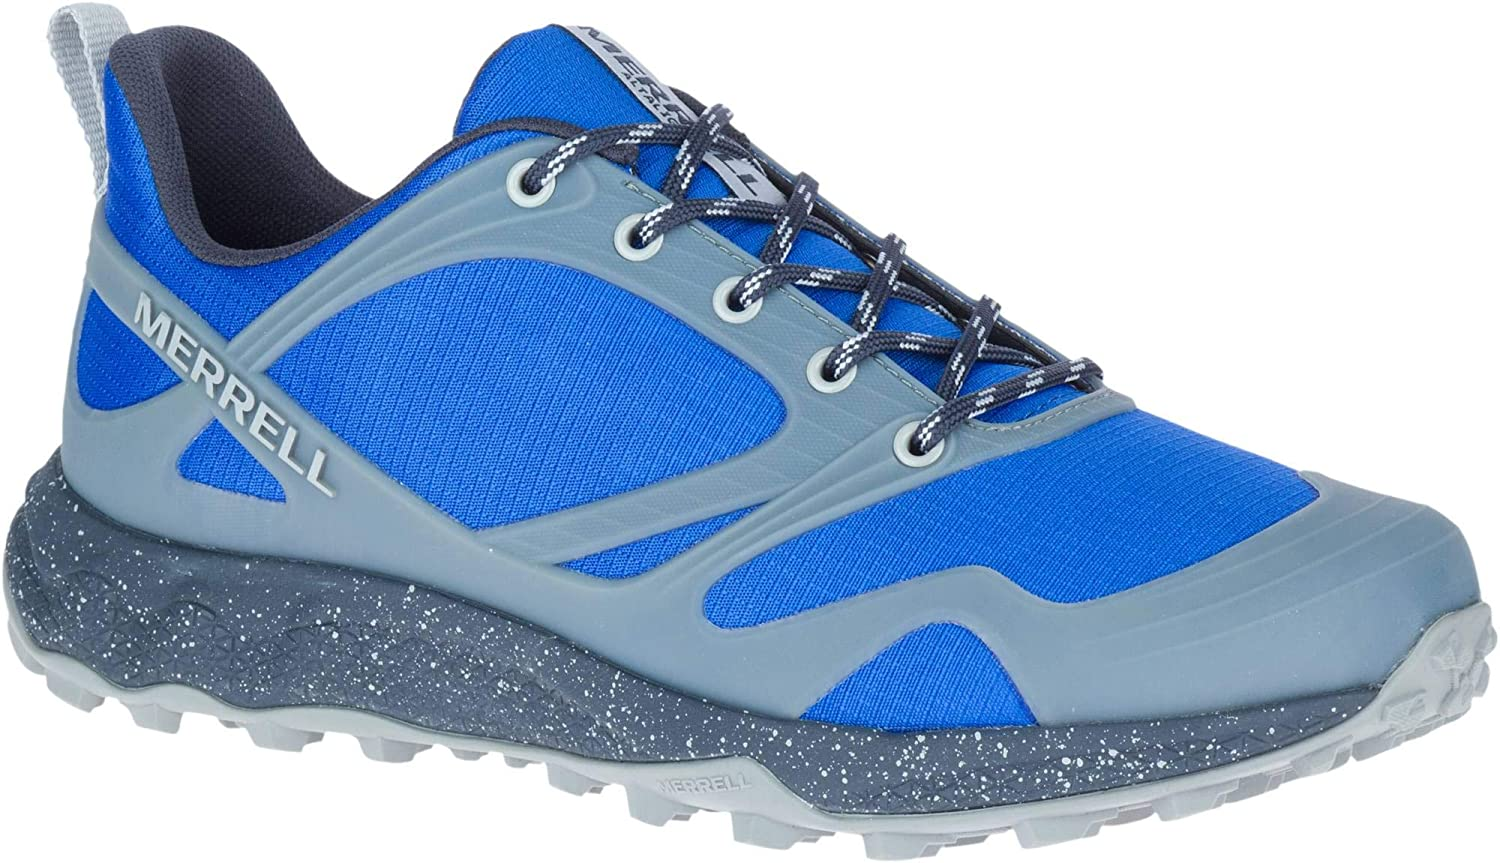 Merrell Men's Altalight Hiking Shoe